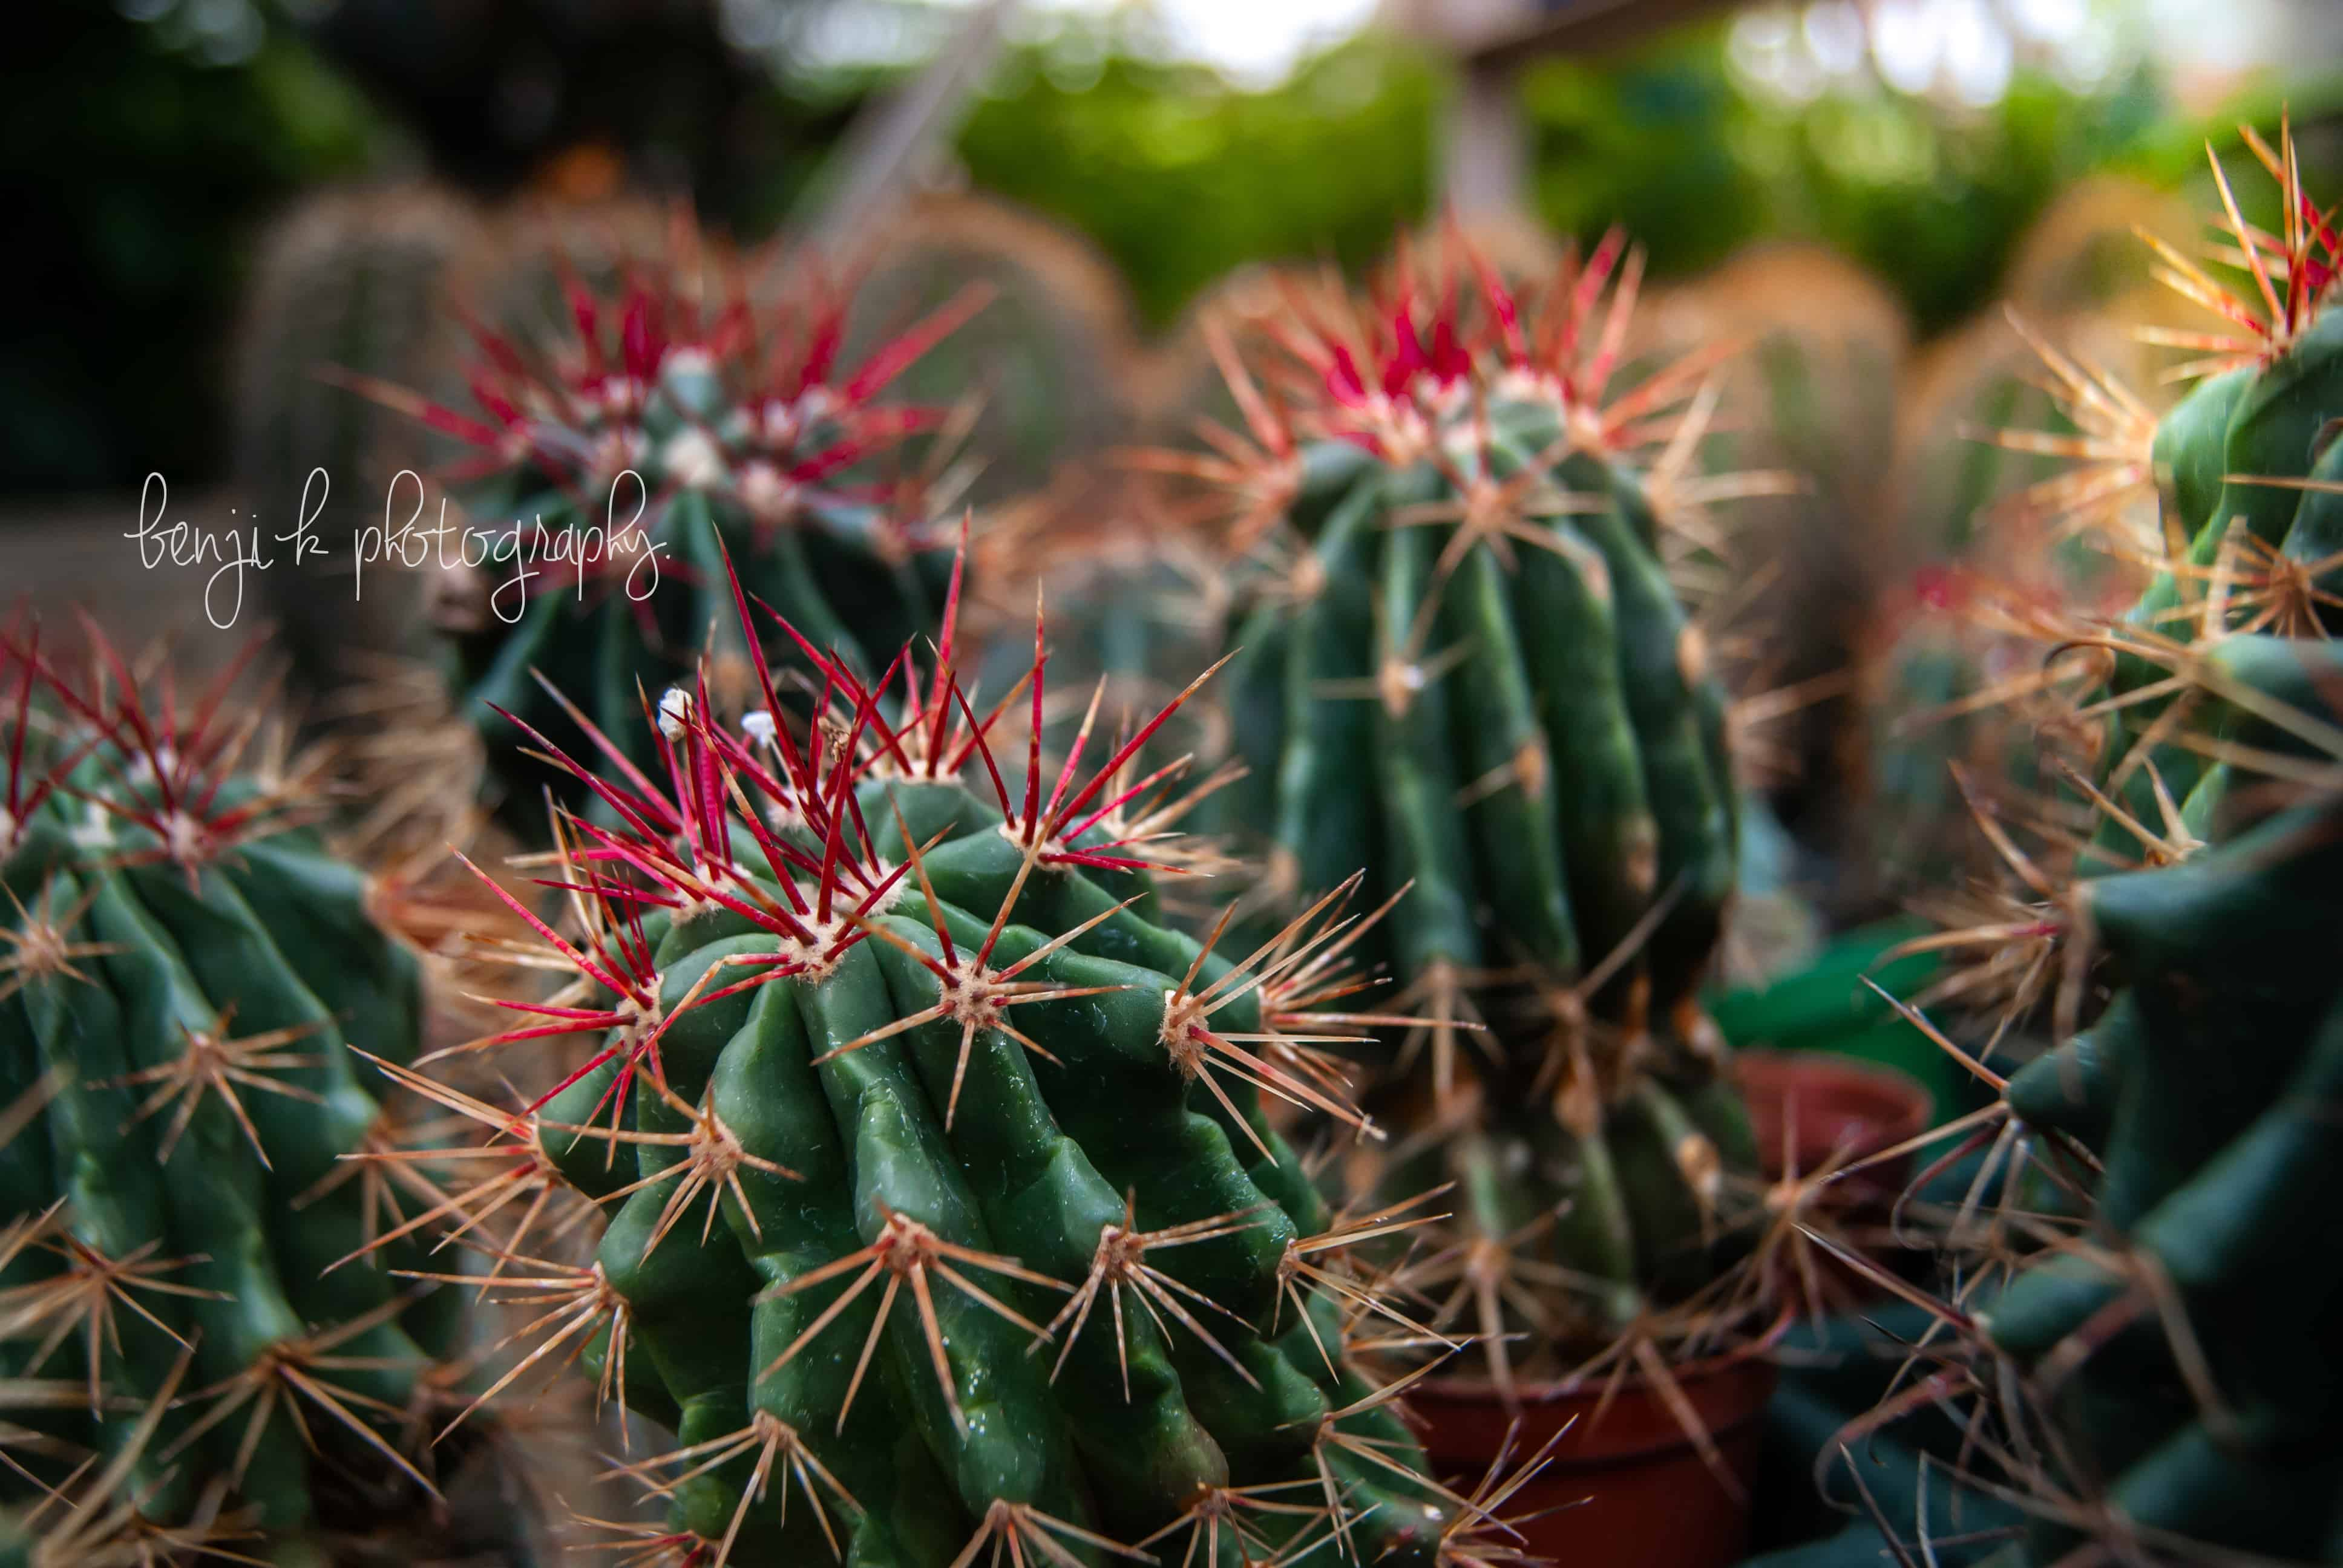 studley's grower's choice cacti growing in greenhouse